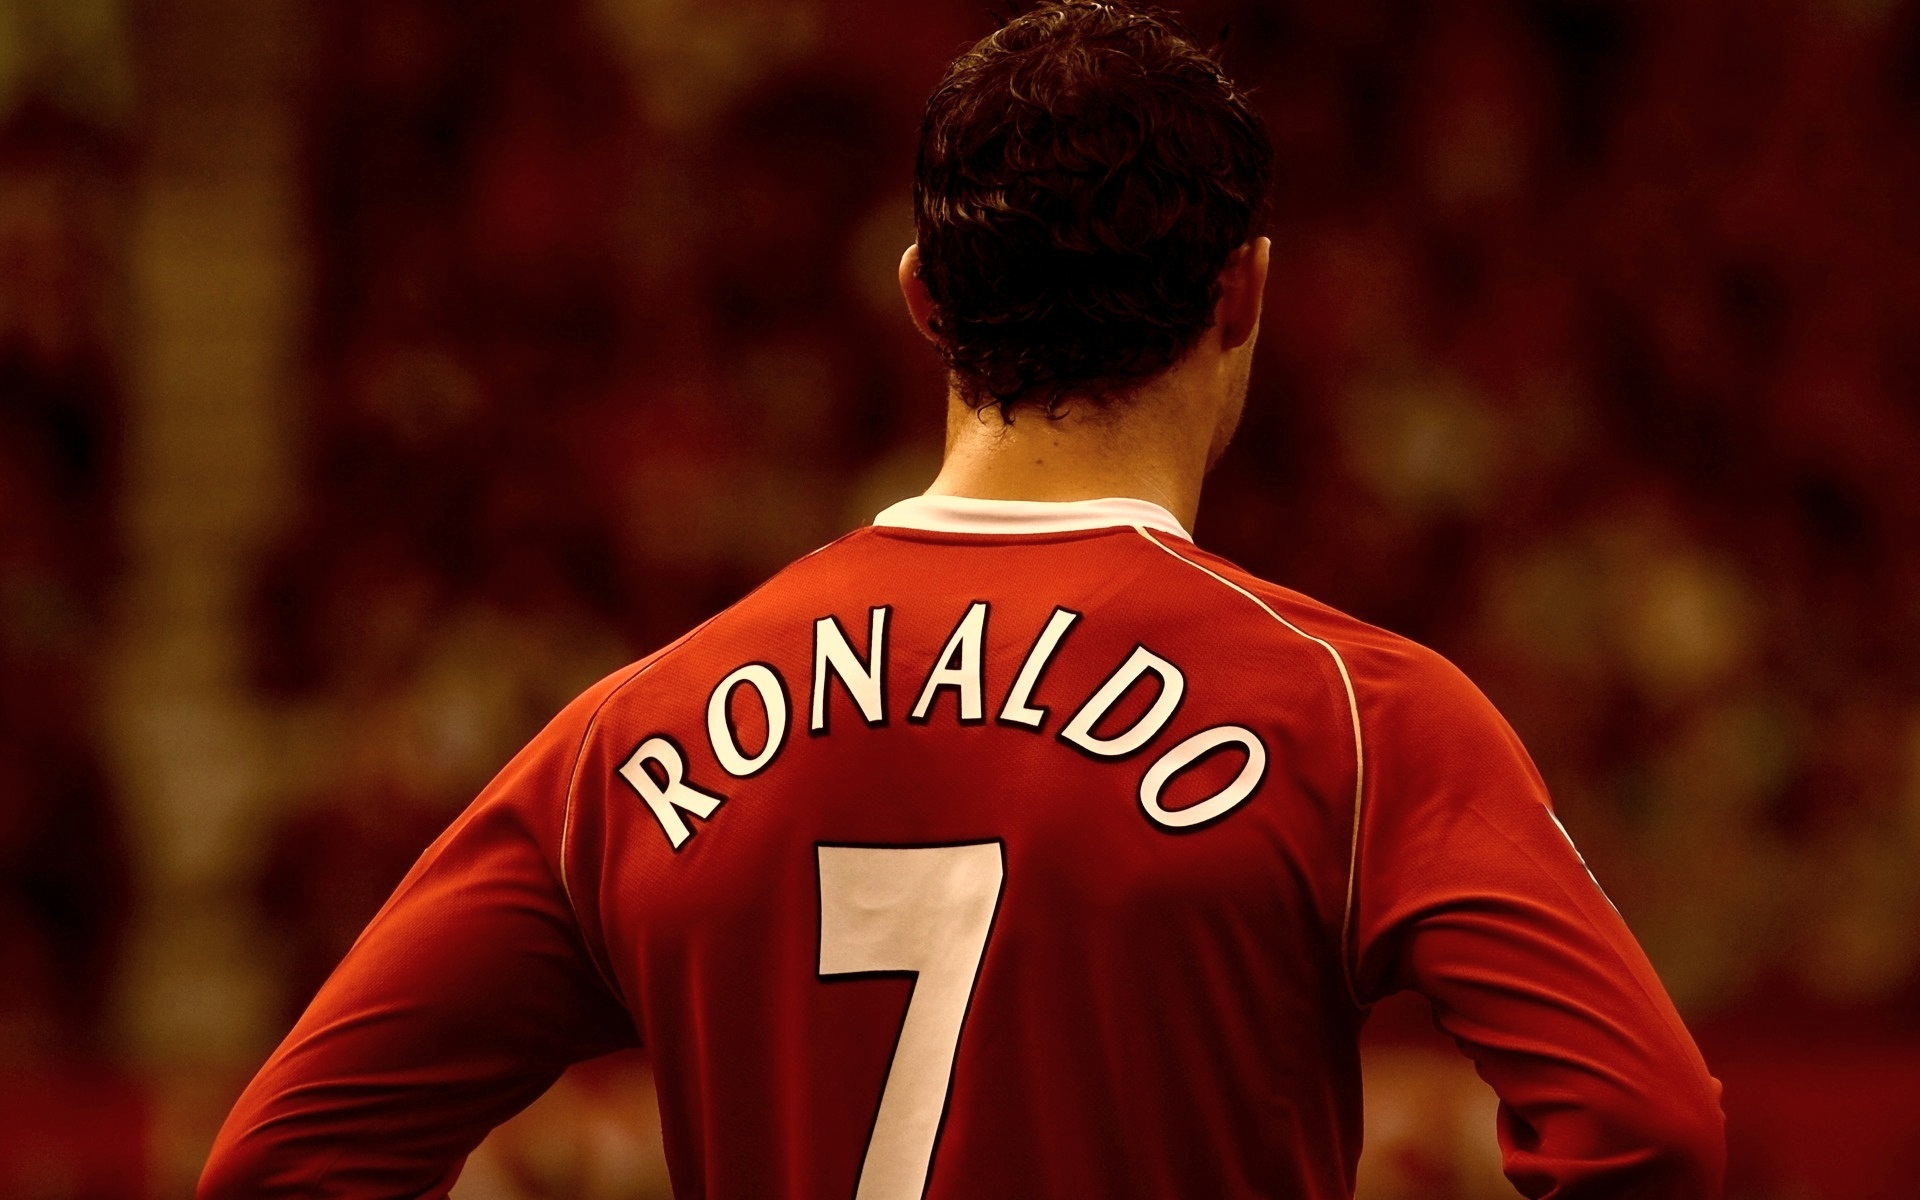 Download free HD Ronaldo 3D Photo Wallpaper, image